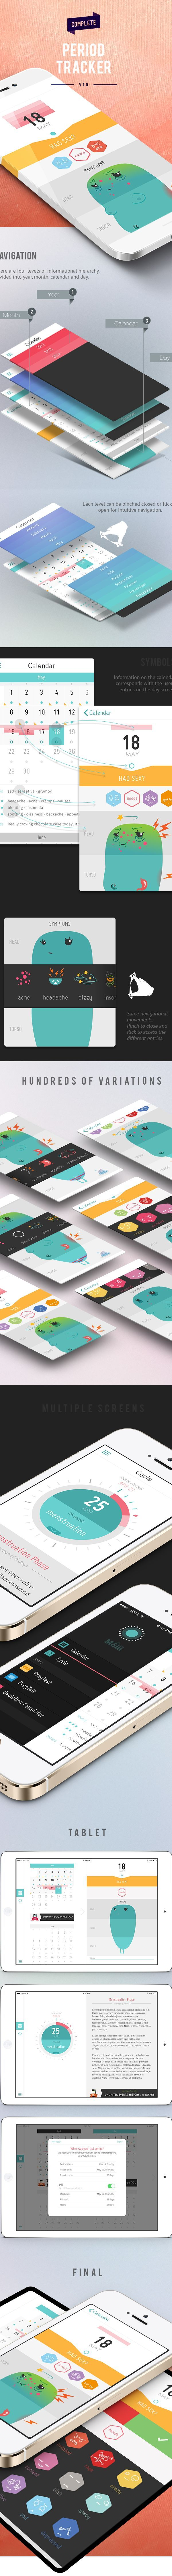 Ineteraction Design, UI/UX, Love the interactive elements of creating symptoms to the cute monster. It makes it fun for the user to create data instead of it being a chore. A visual way to show menstration symptoms.